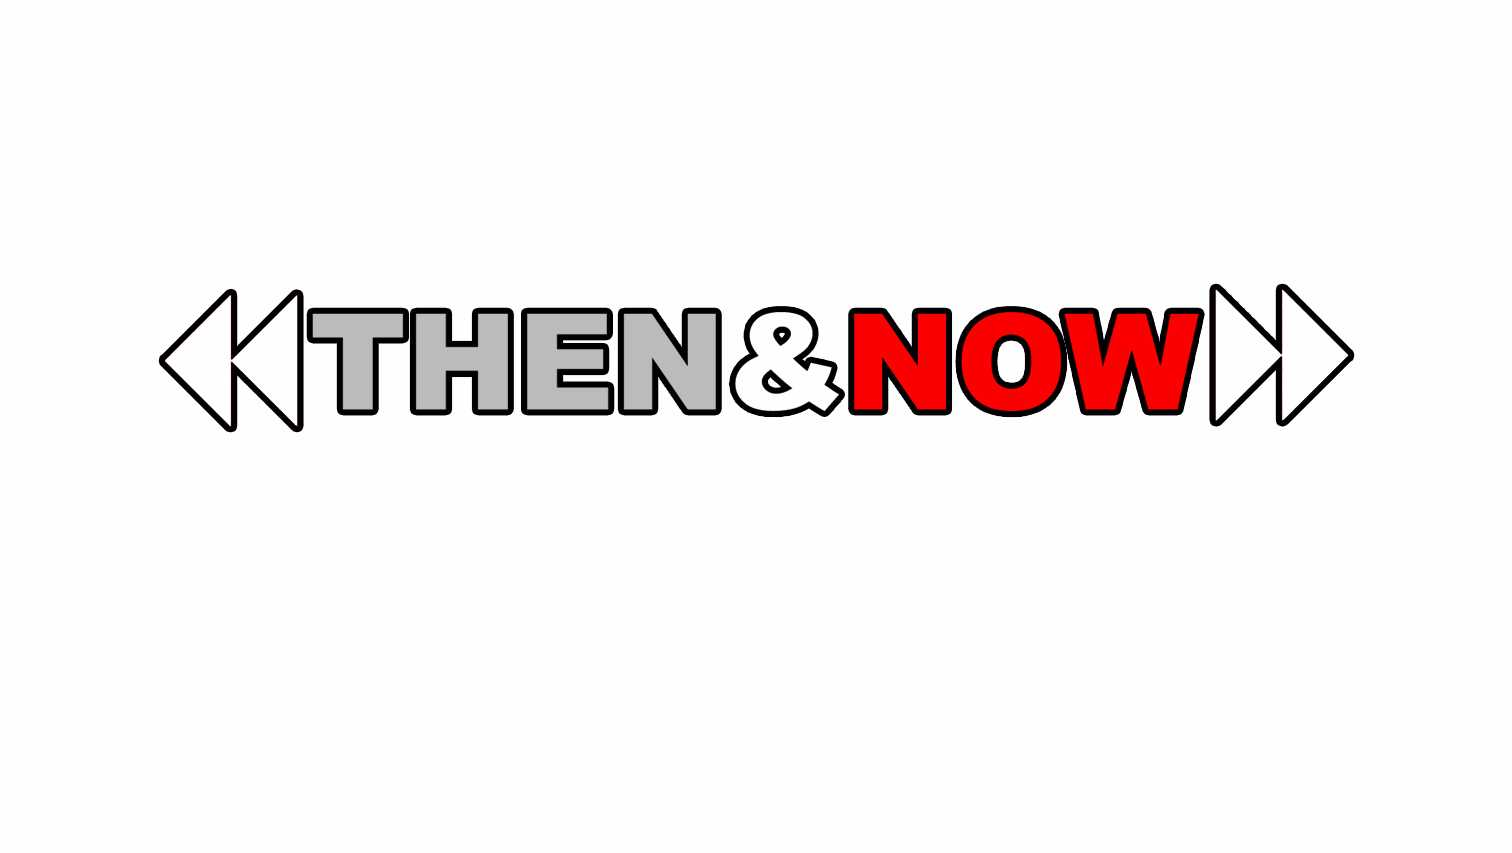 then & now_1510116827090.jpg